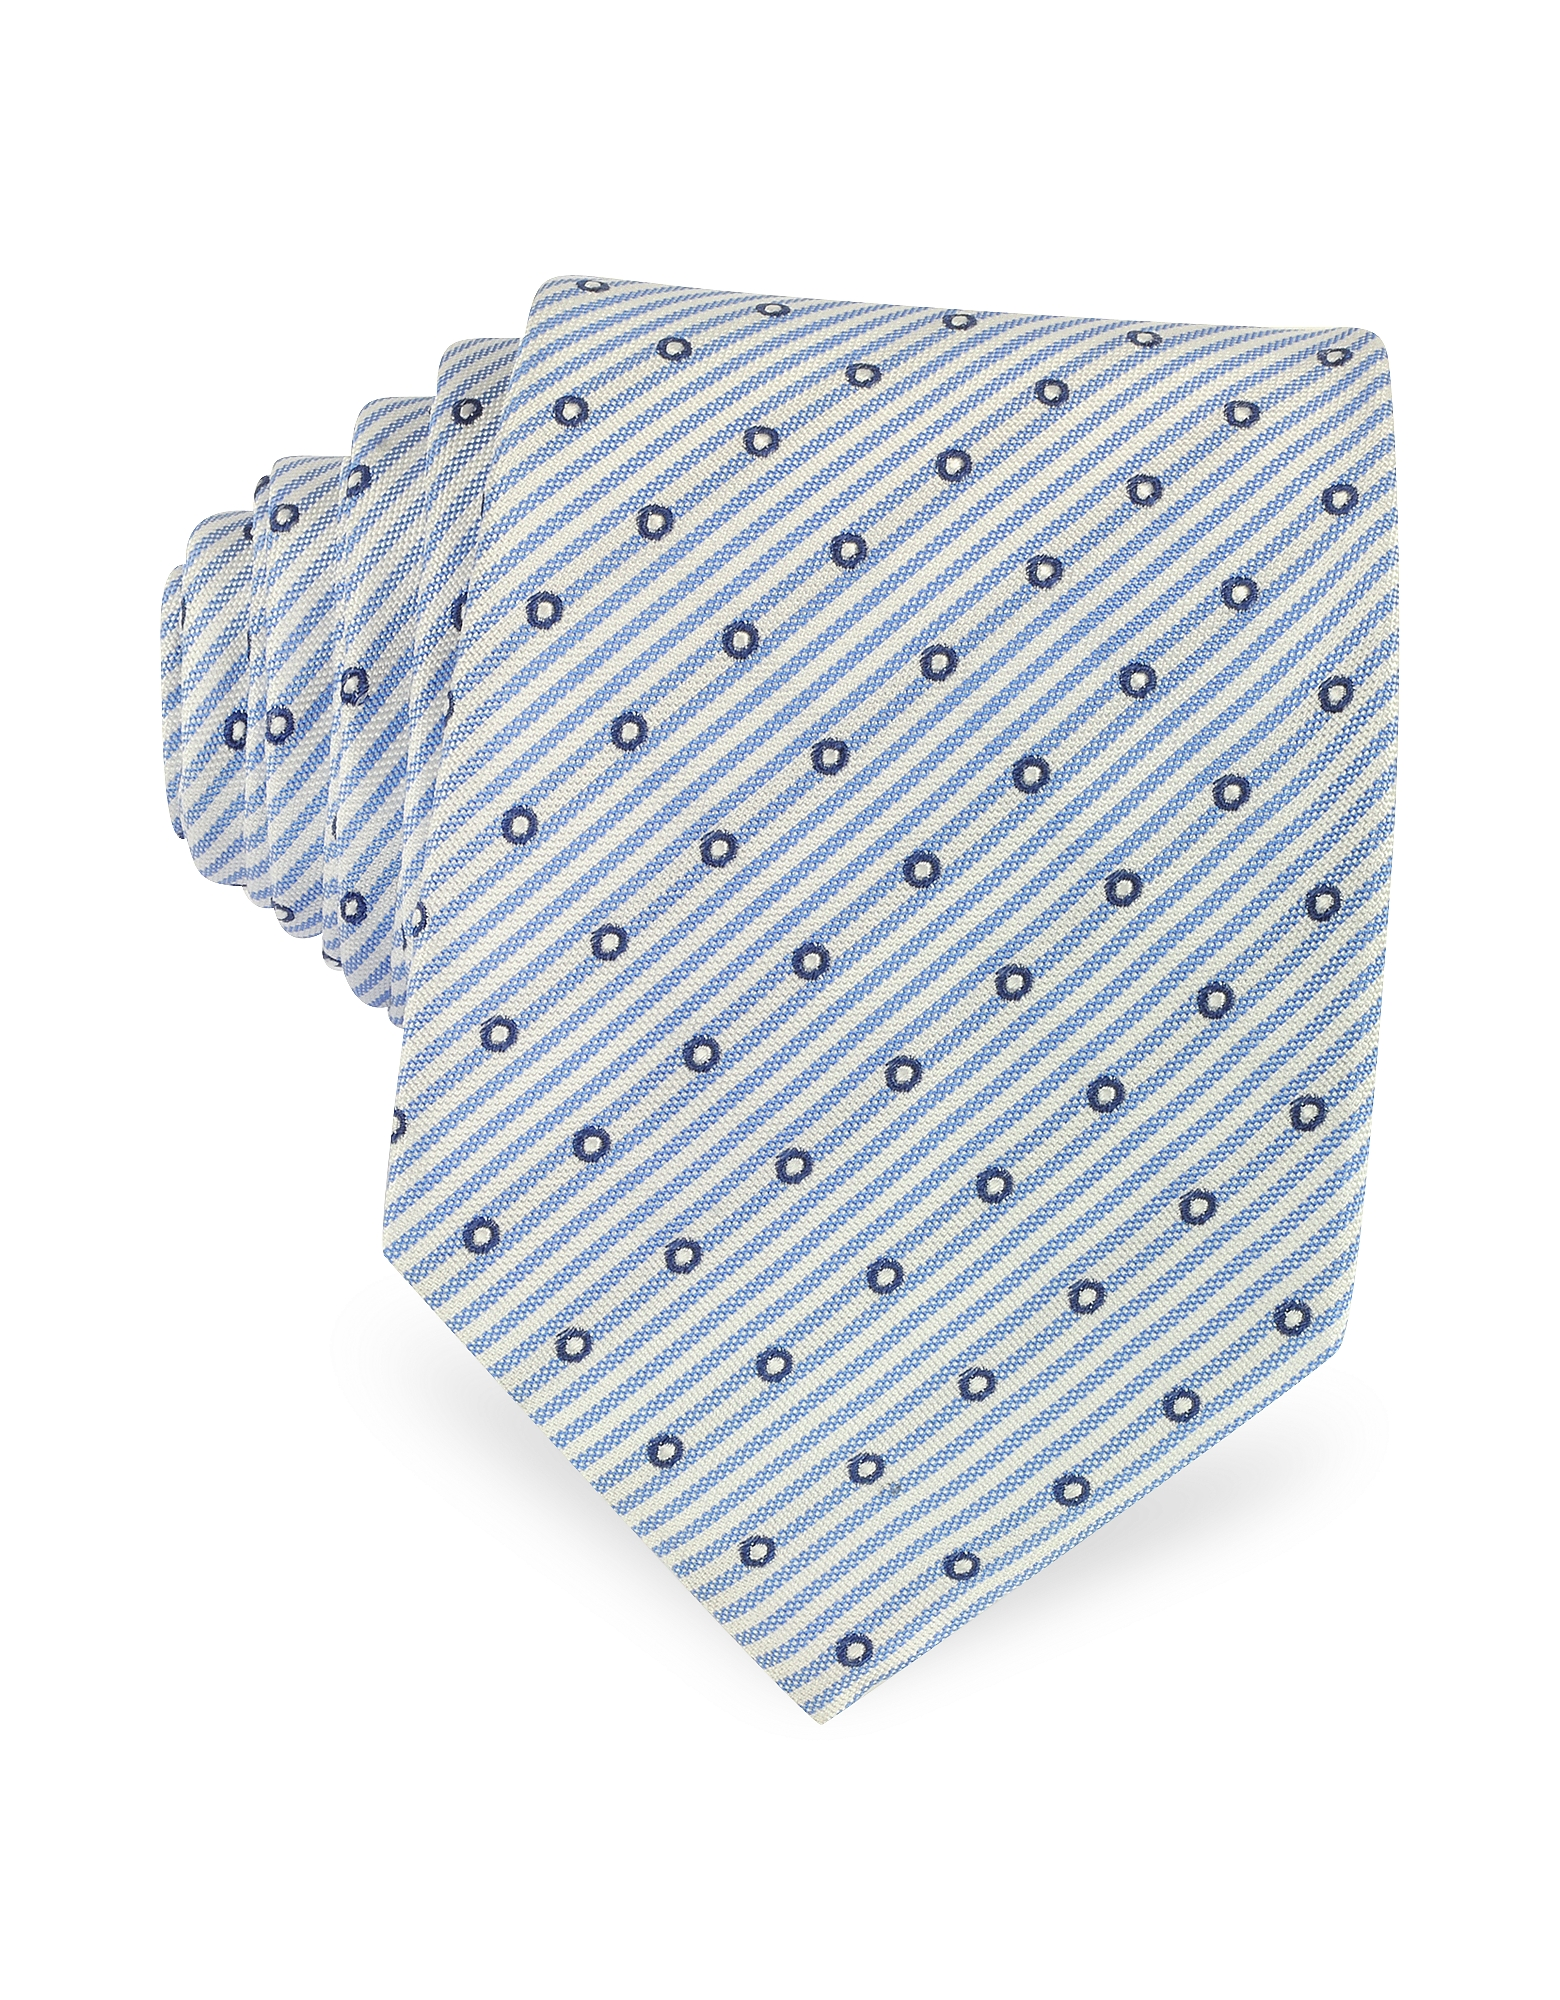 Forzieri Ties, Dots and Stripe Print Woven Silk Tie